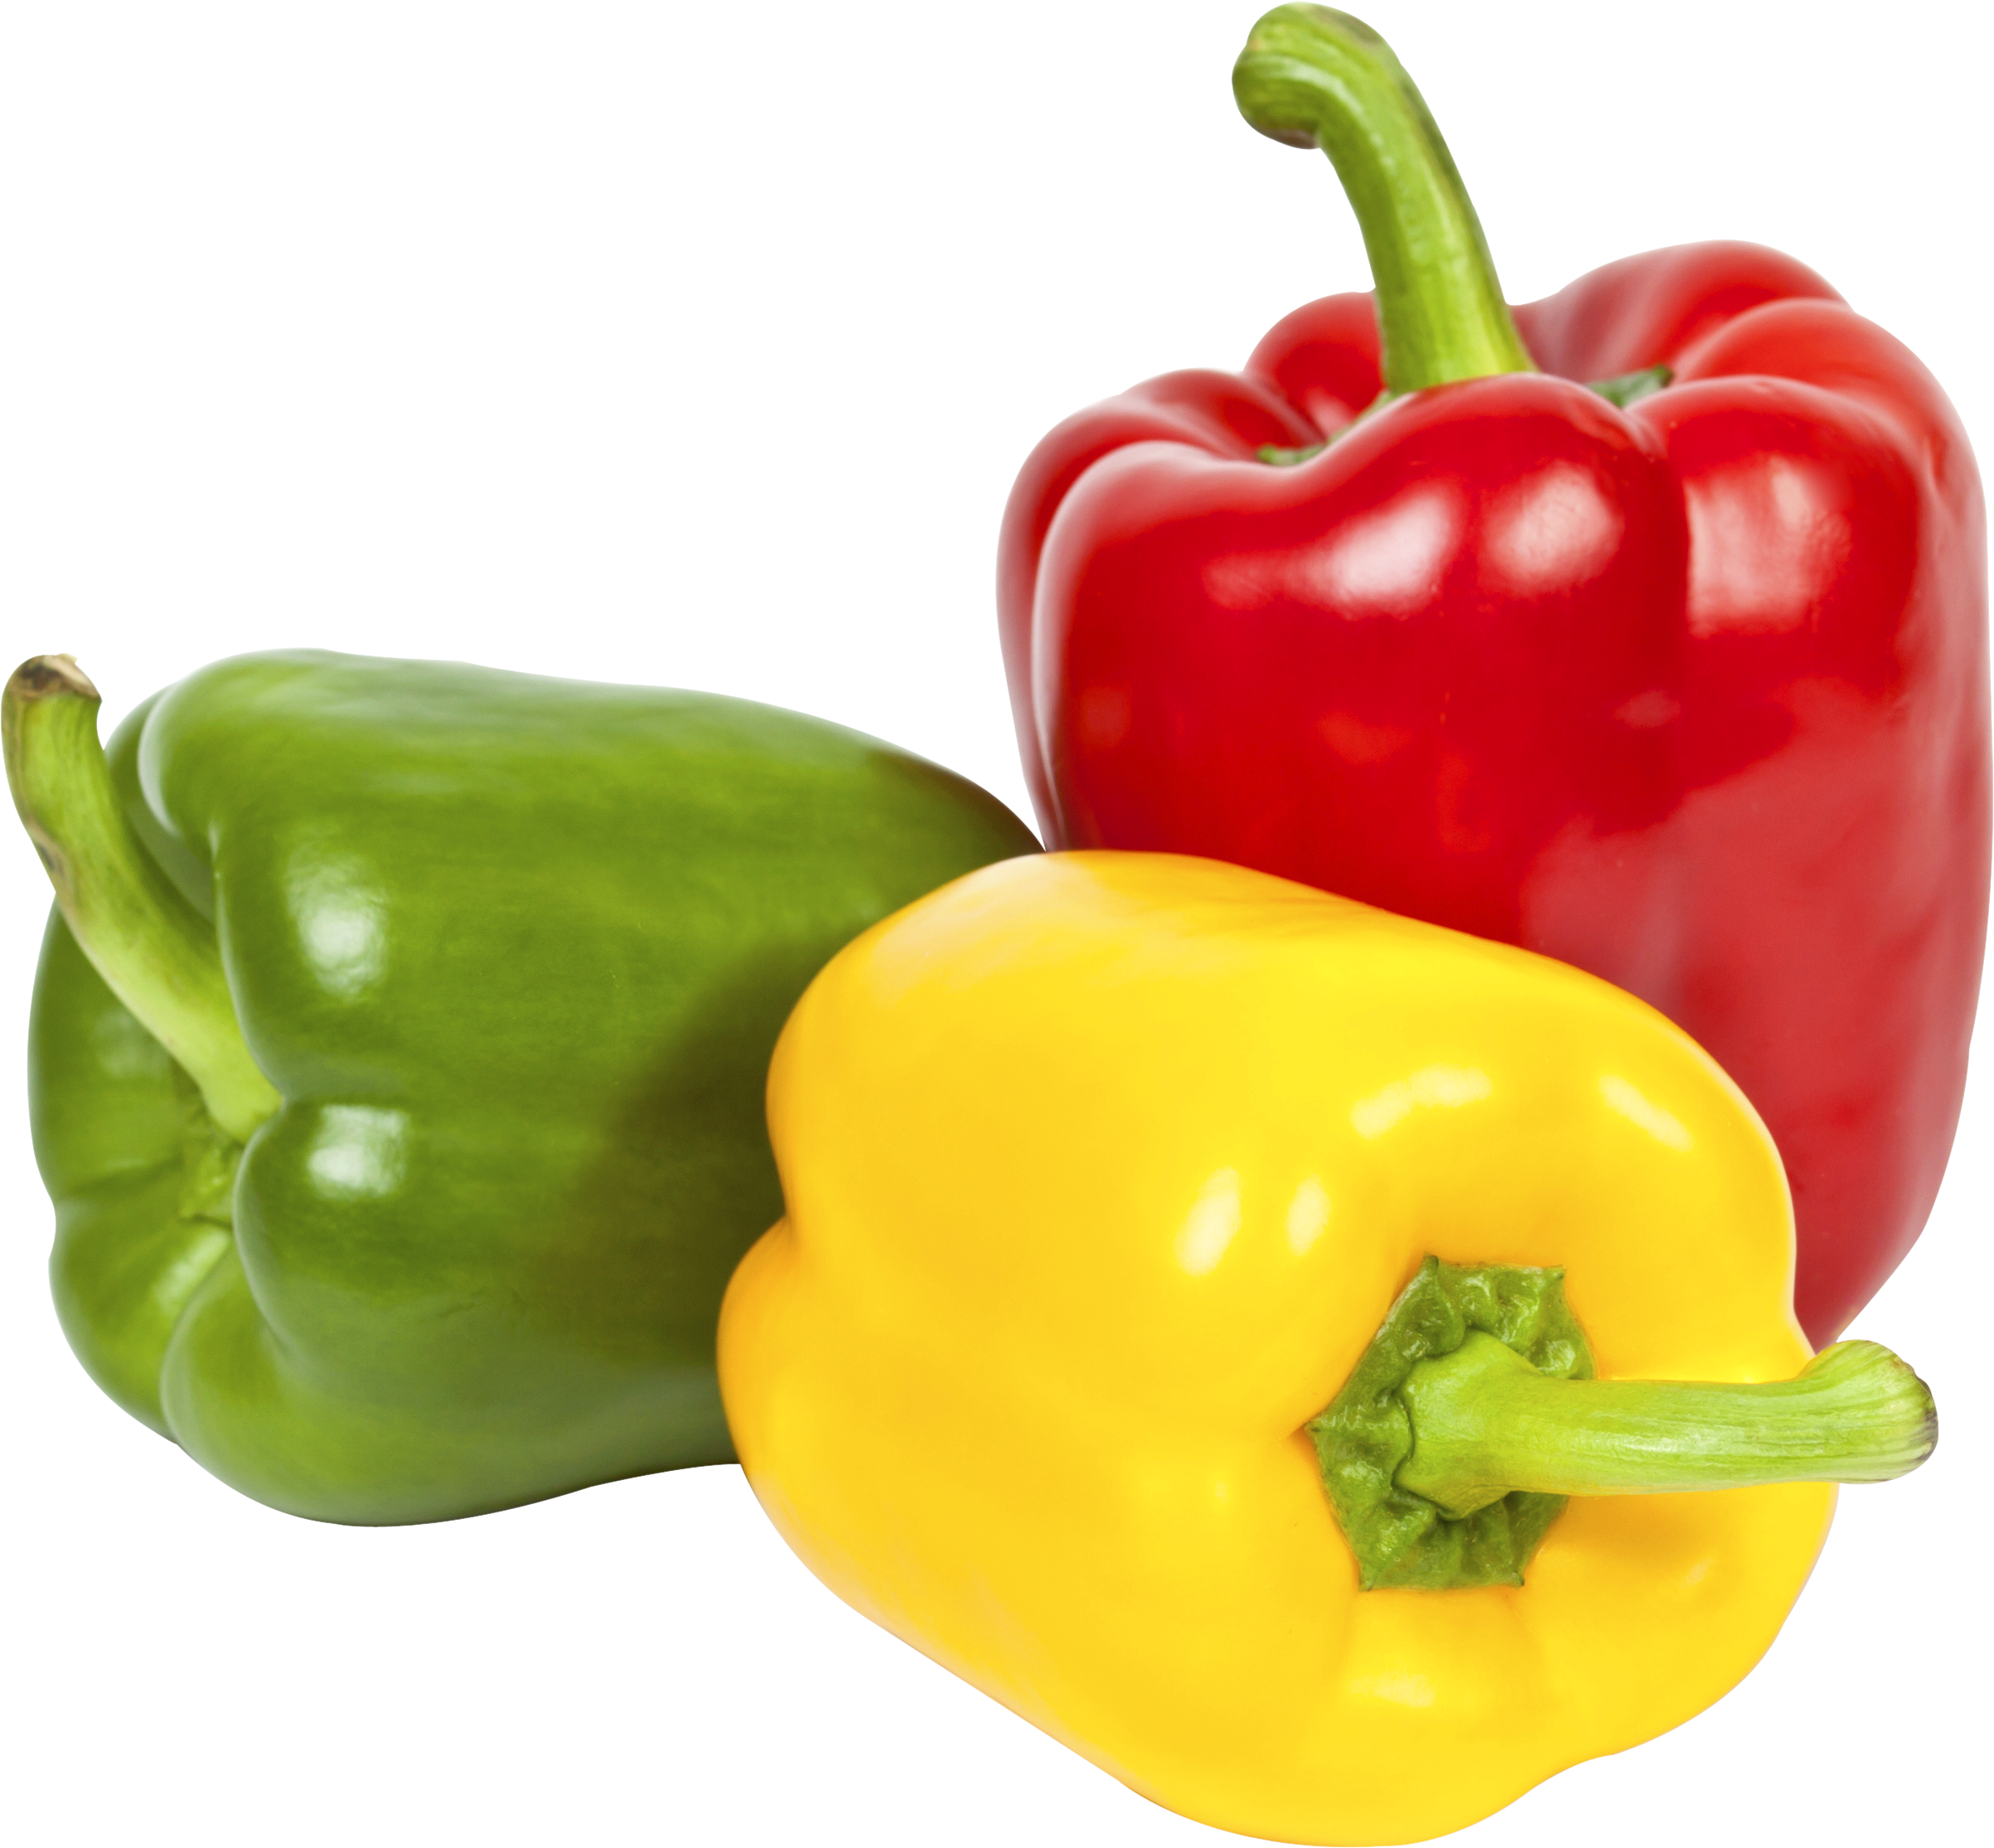 Vegetable PNG - 20353